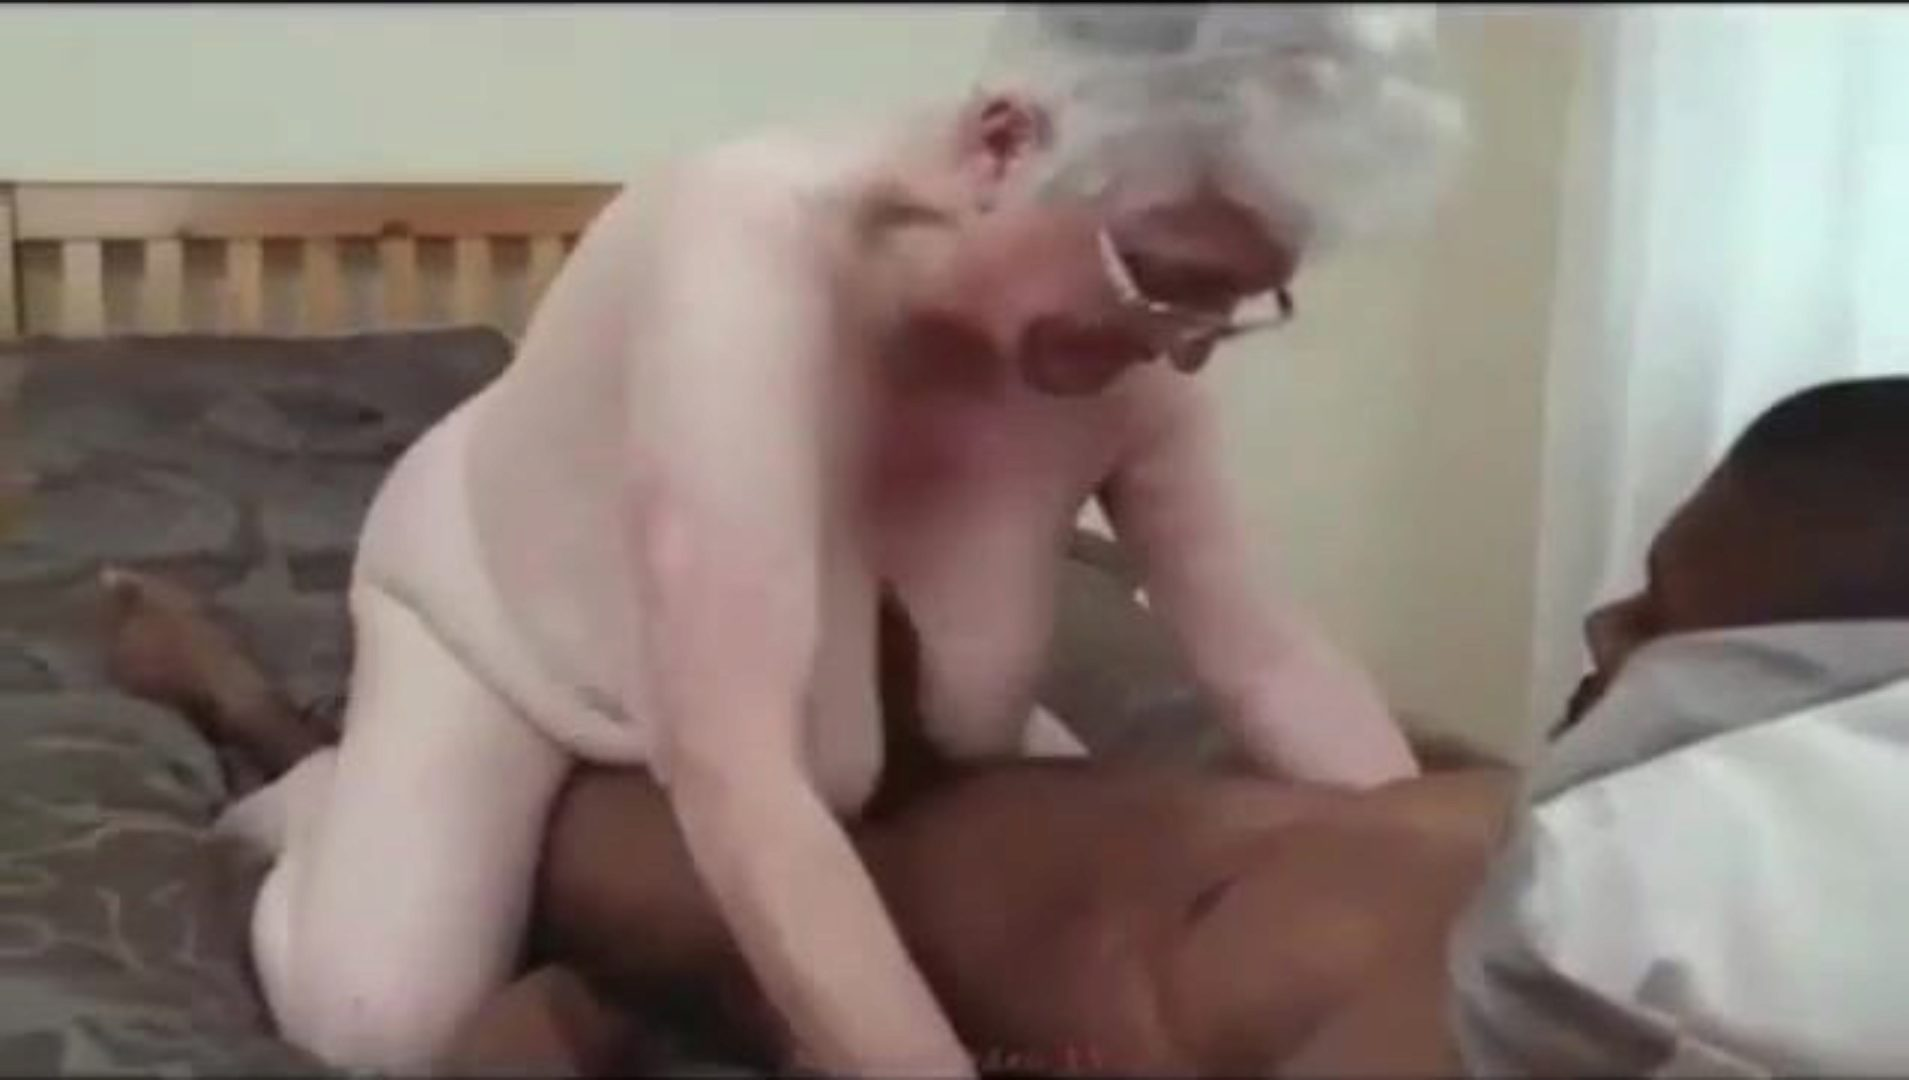 Granny Caroline Fucks Black Cock Old grannie Caroline getting banged by a good BBC. She's undoubtedly a granny I crave to pound